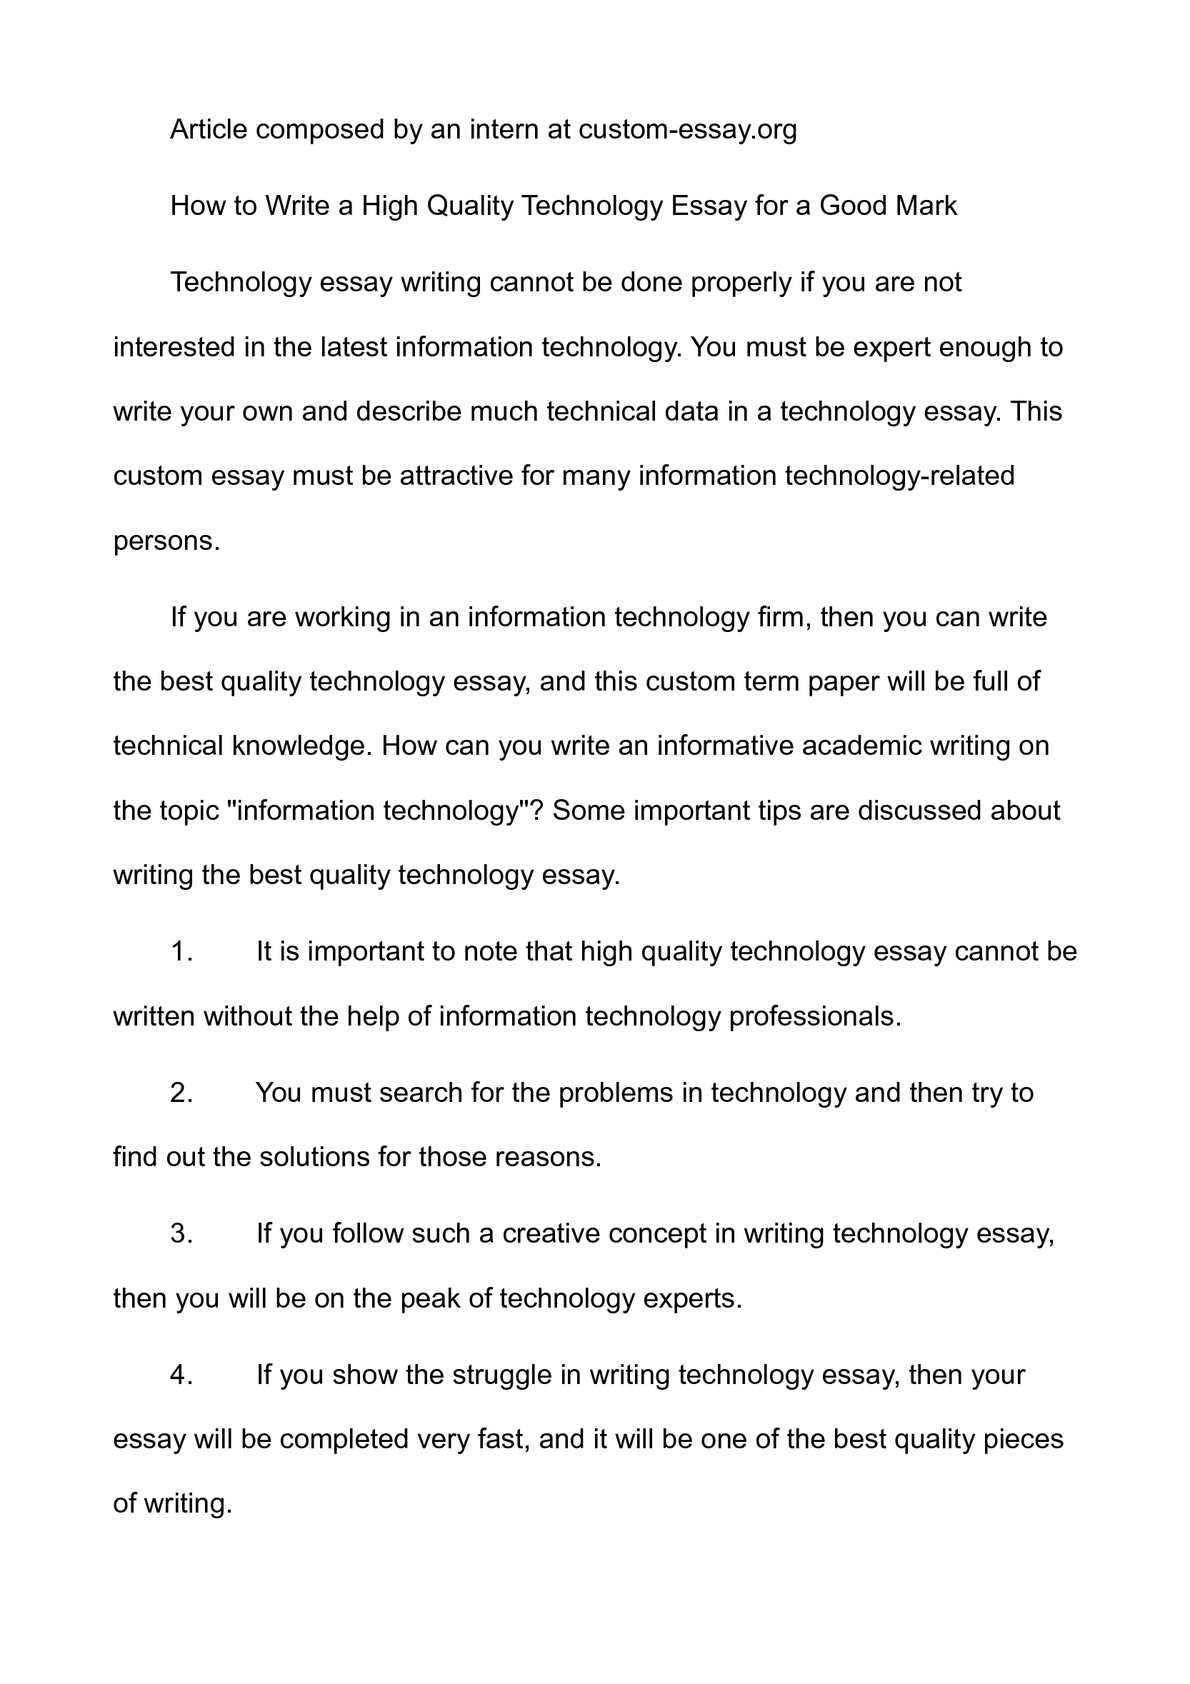 001 P1 Technology Essay Top Writing Task 2 Prompts Mobile Full